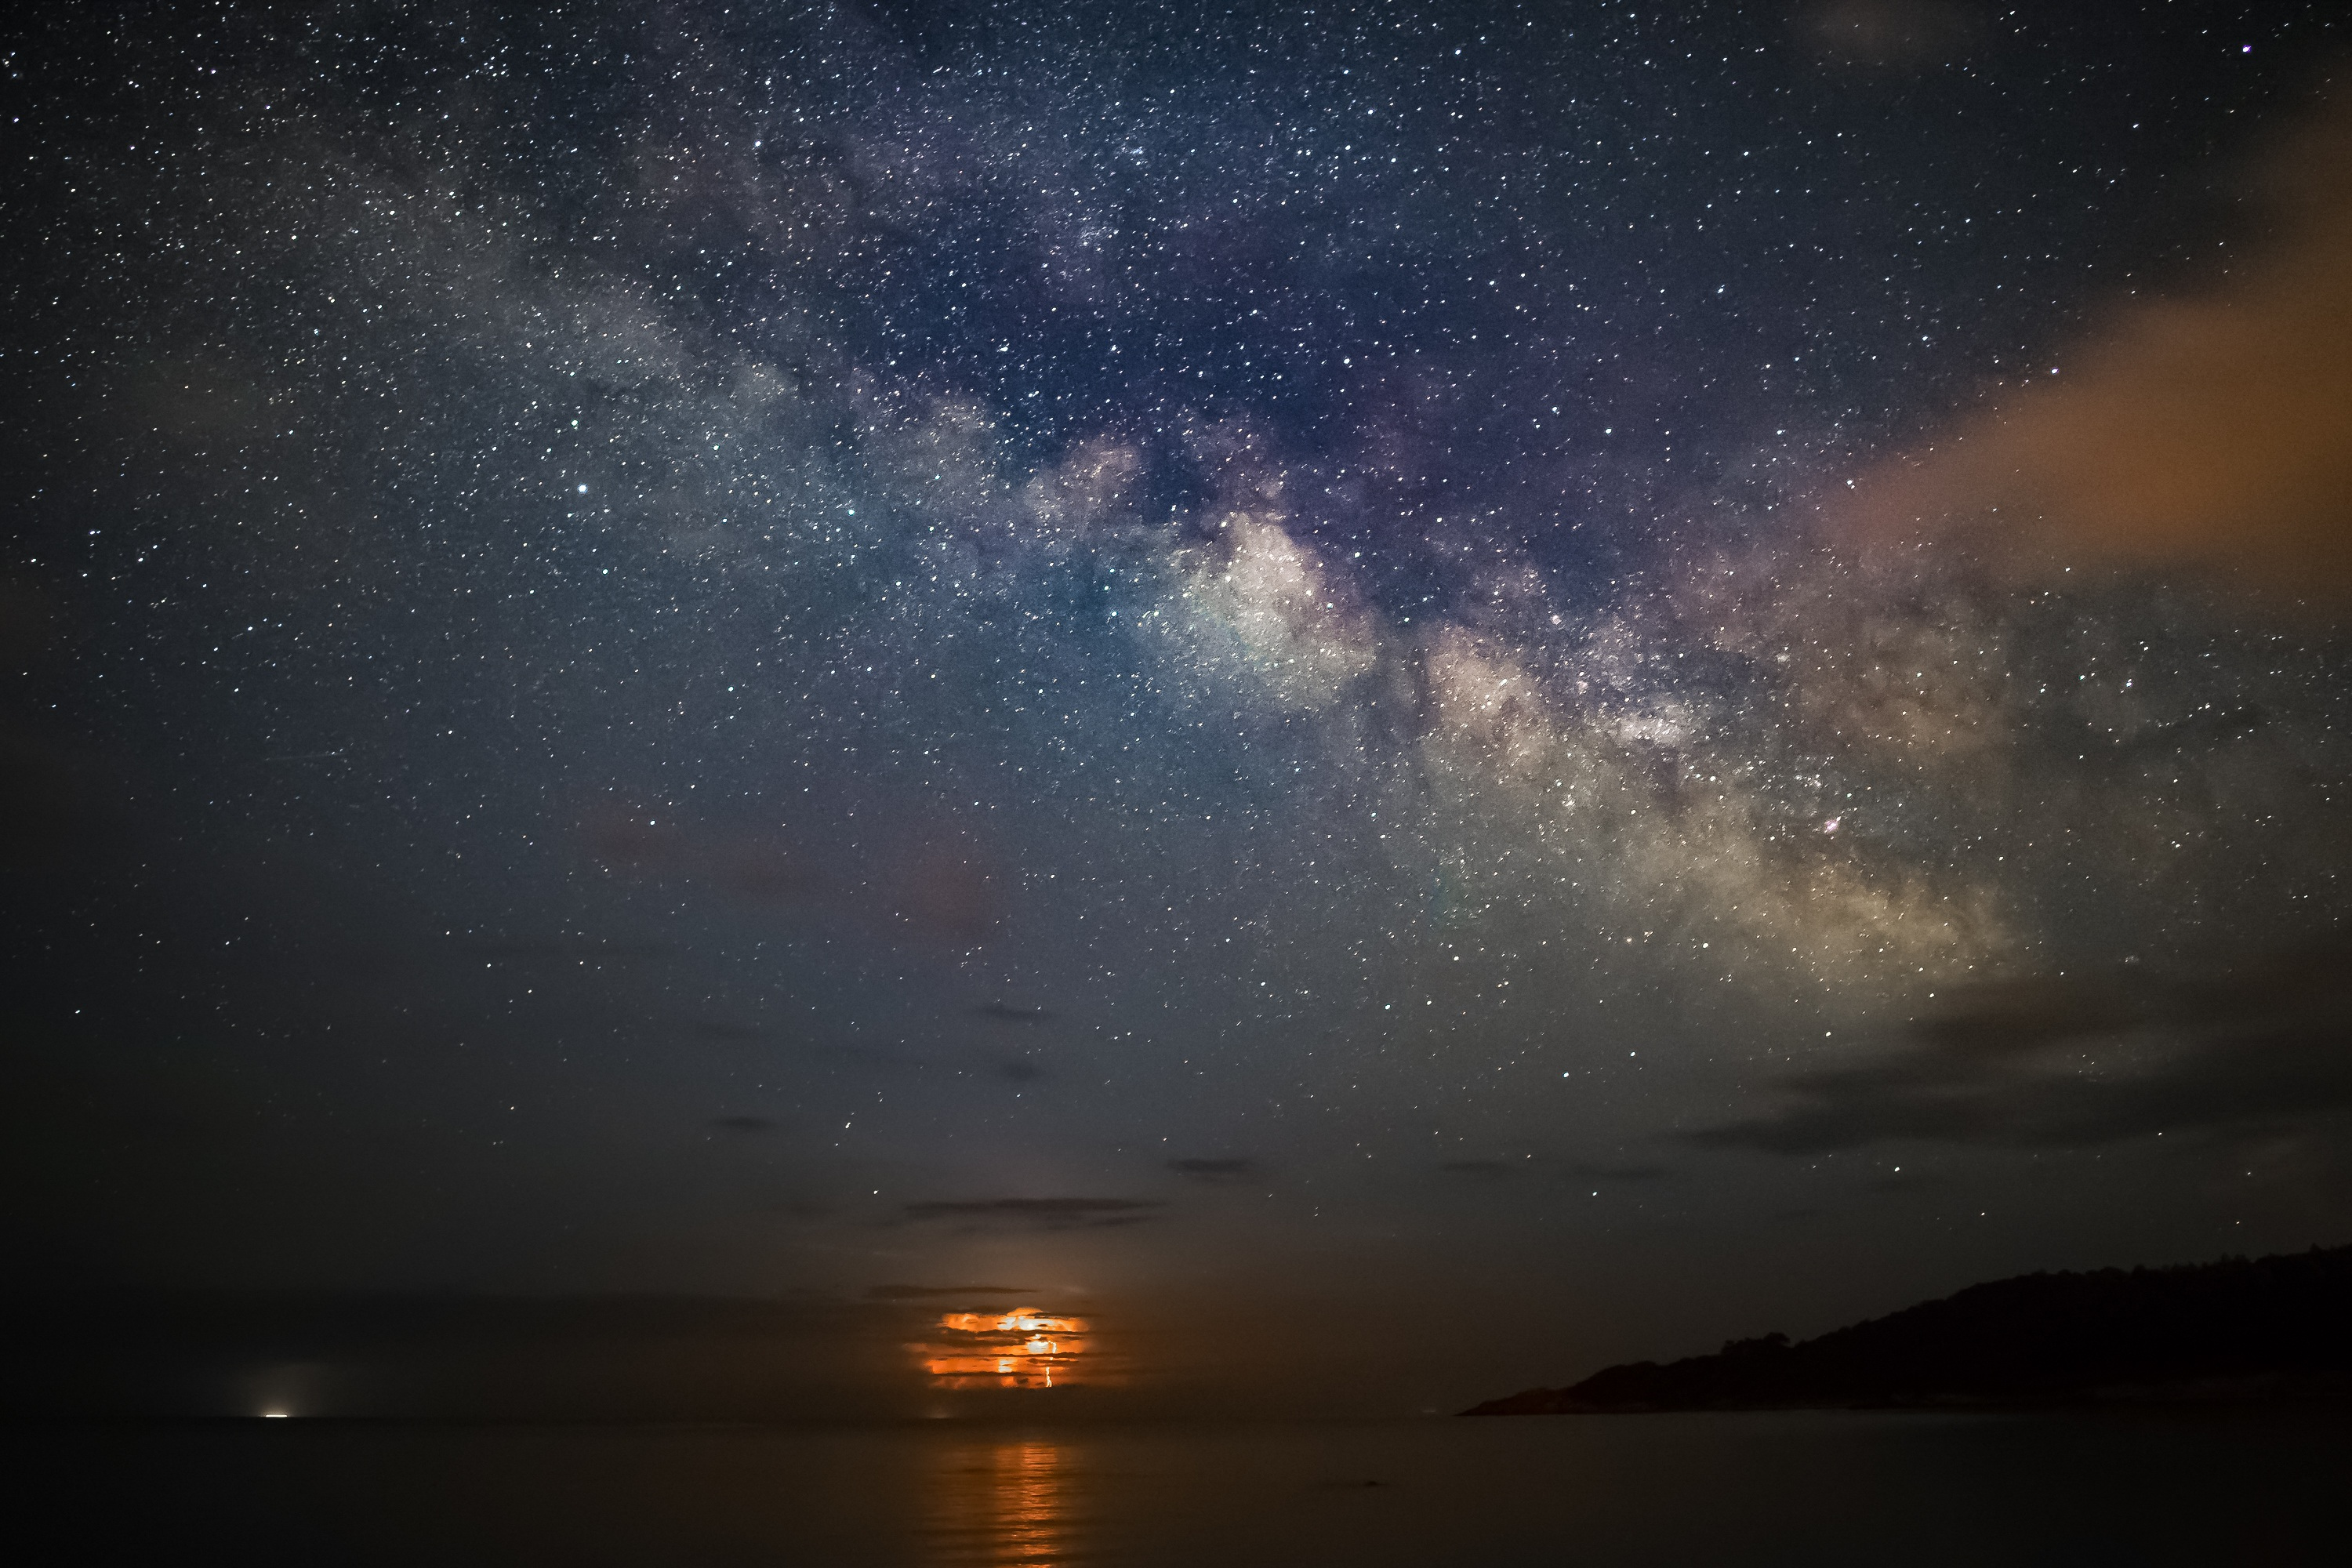 Beautiful Iphone 5 Wallpapers Free Stock Photo Of Astrophotography Background Corsica